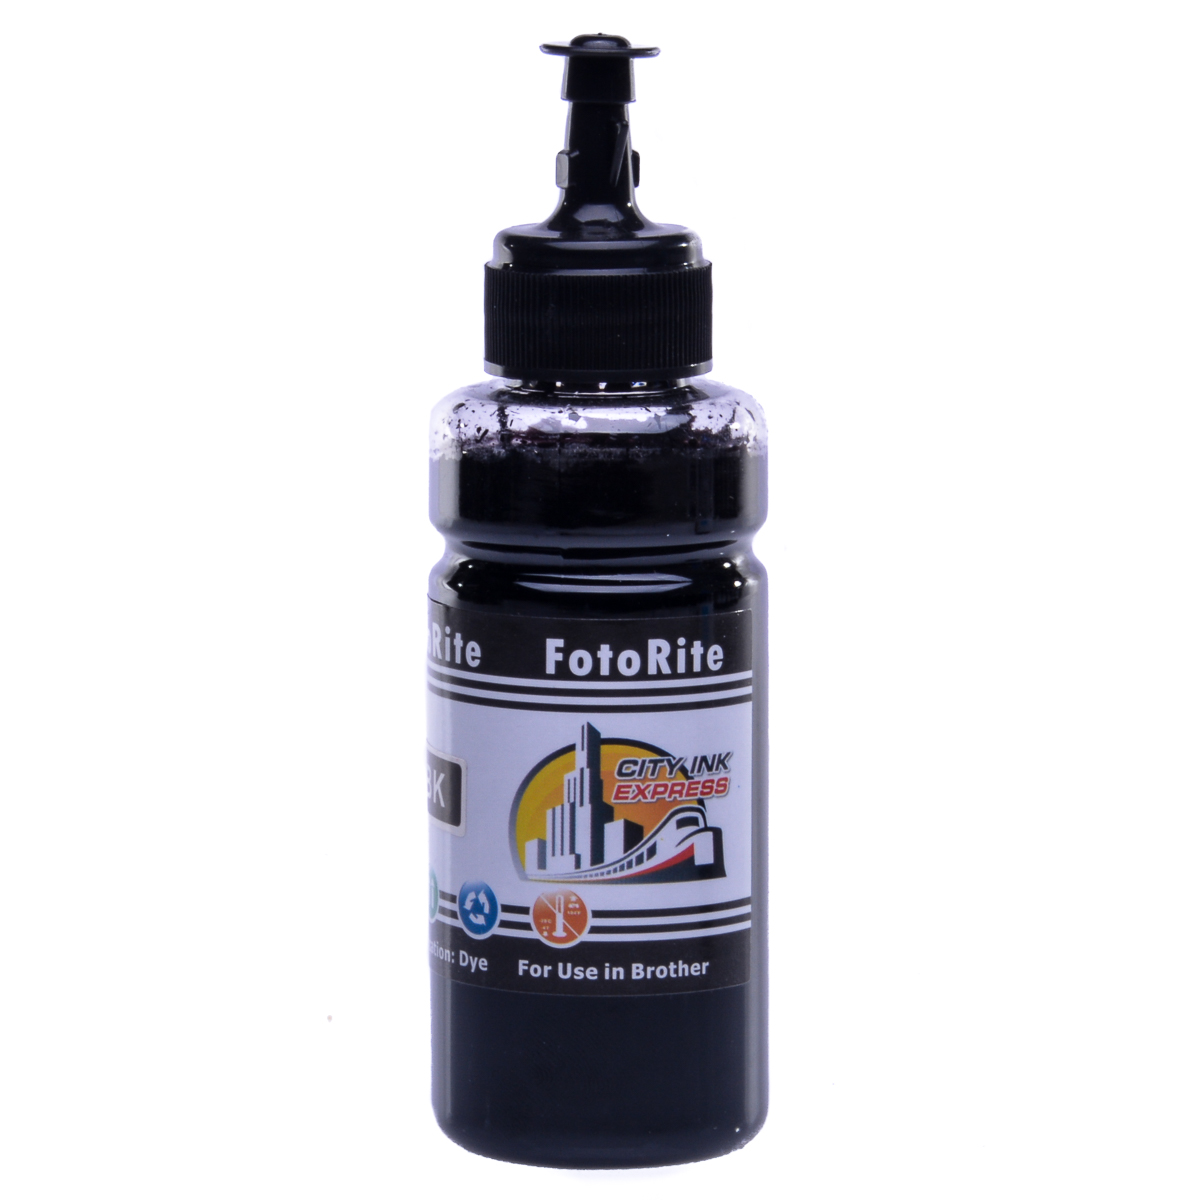 Cheap Black dye ink replaces Brother MFC-J4510DW - LC123BK,LC125BK,LC127BK